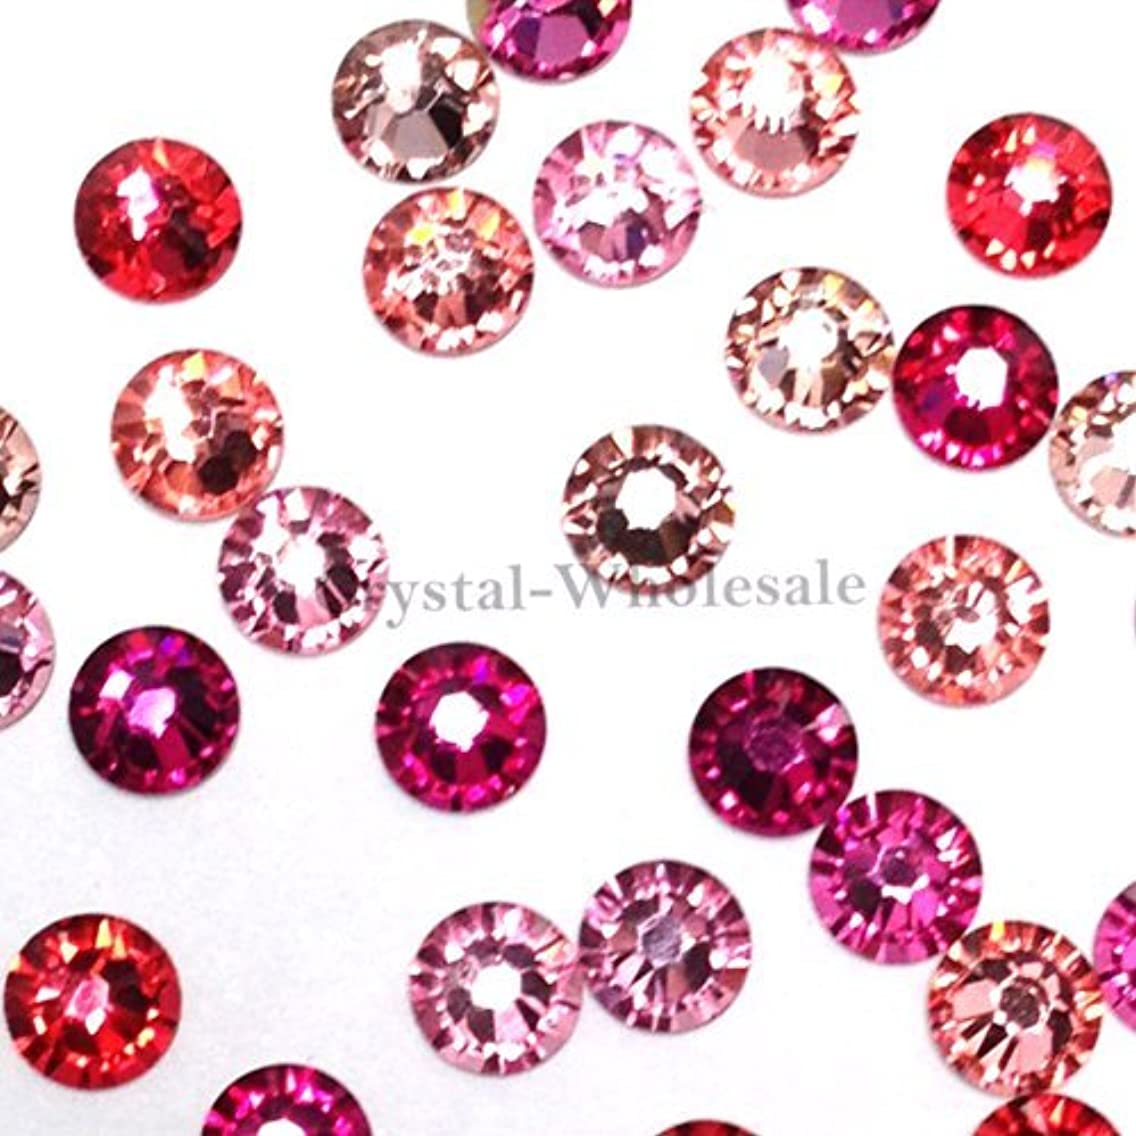 Swarovski 2058 SS16 (3.9mm) crystal flatbacks No-Hotfix rhinestones PINK Colors Mix